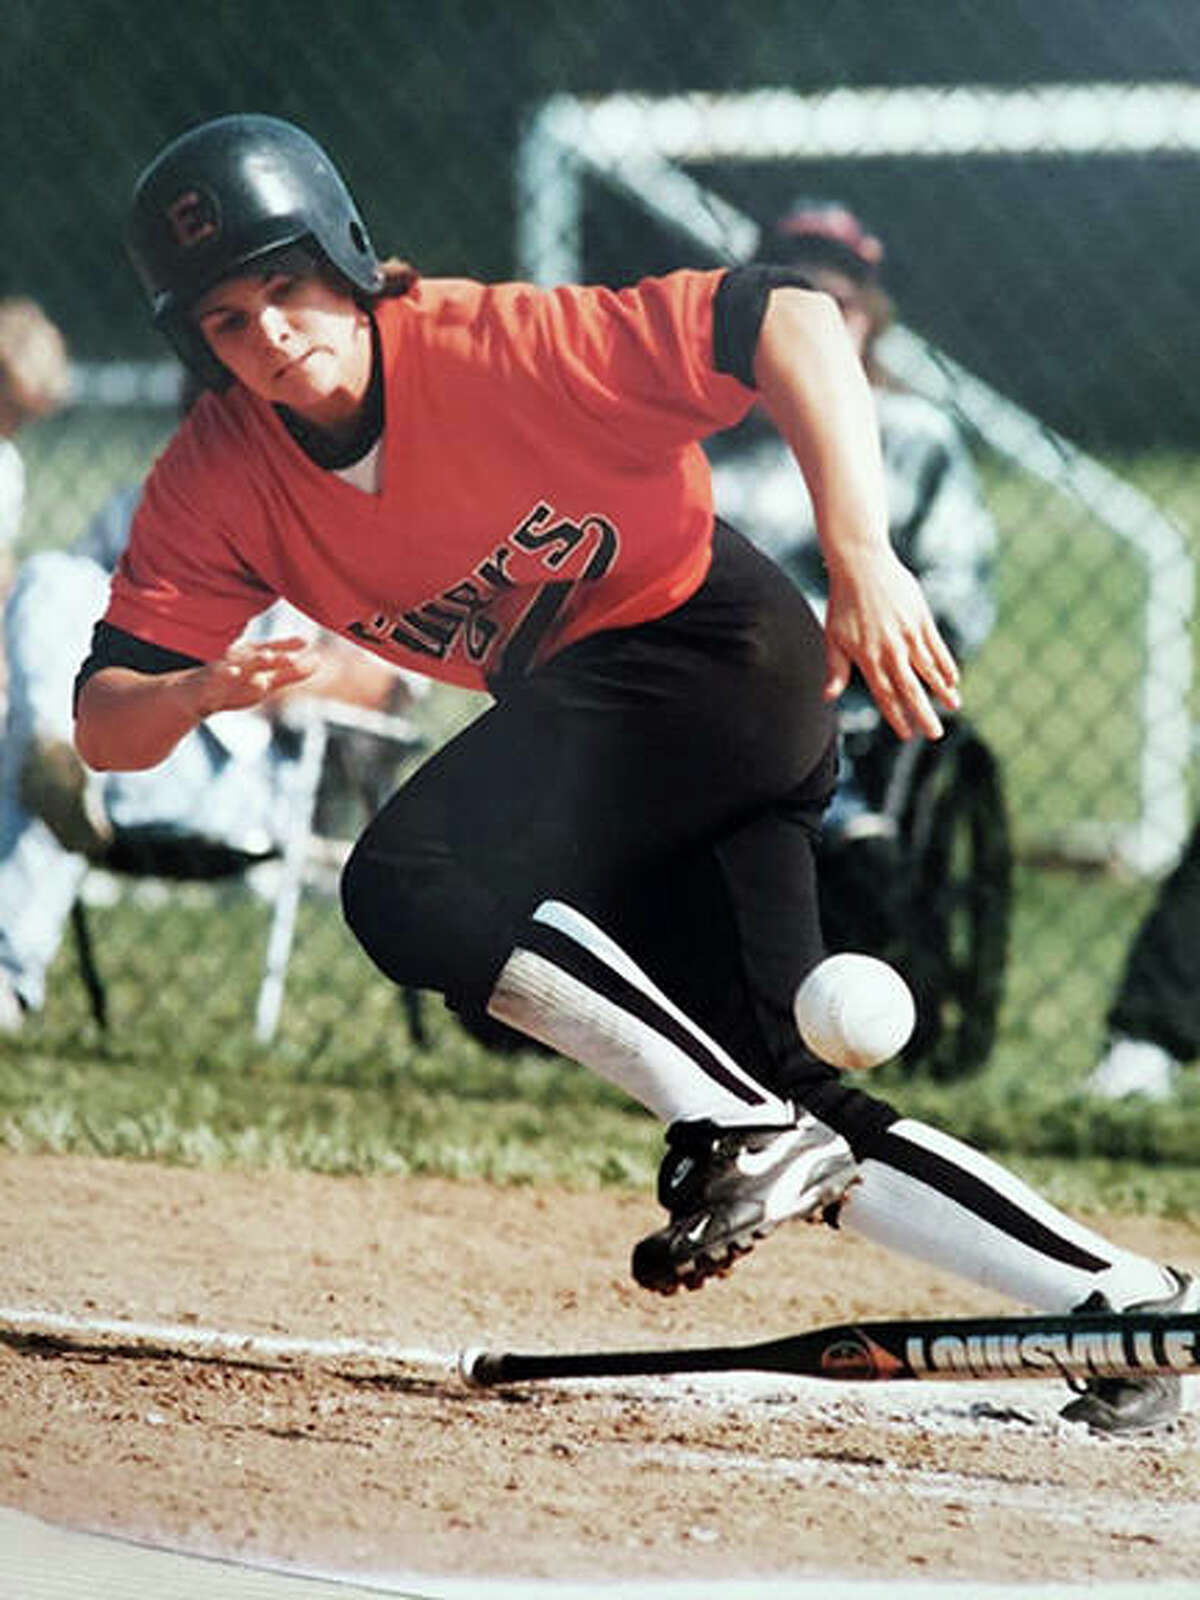 Jacque Woosley, a 1998 Edwardsville graduate, lays down a bunt during her softball playing days at EHS.